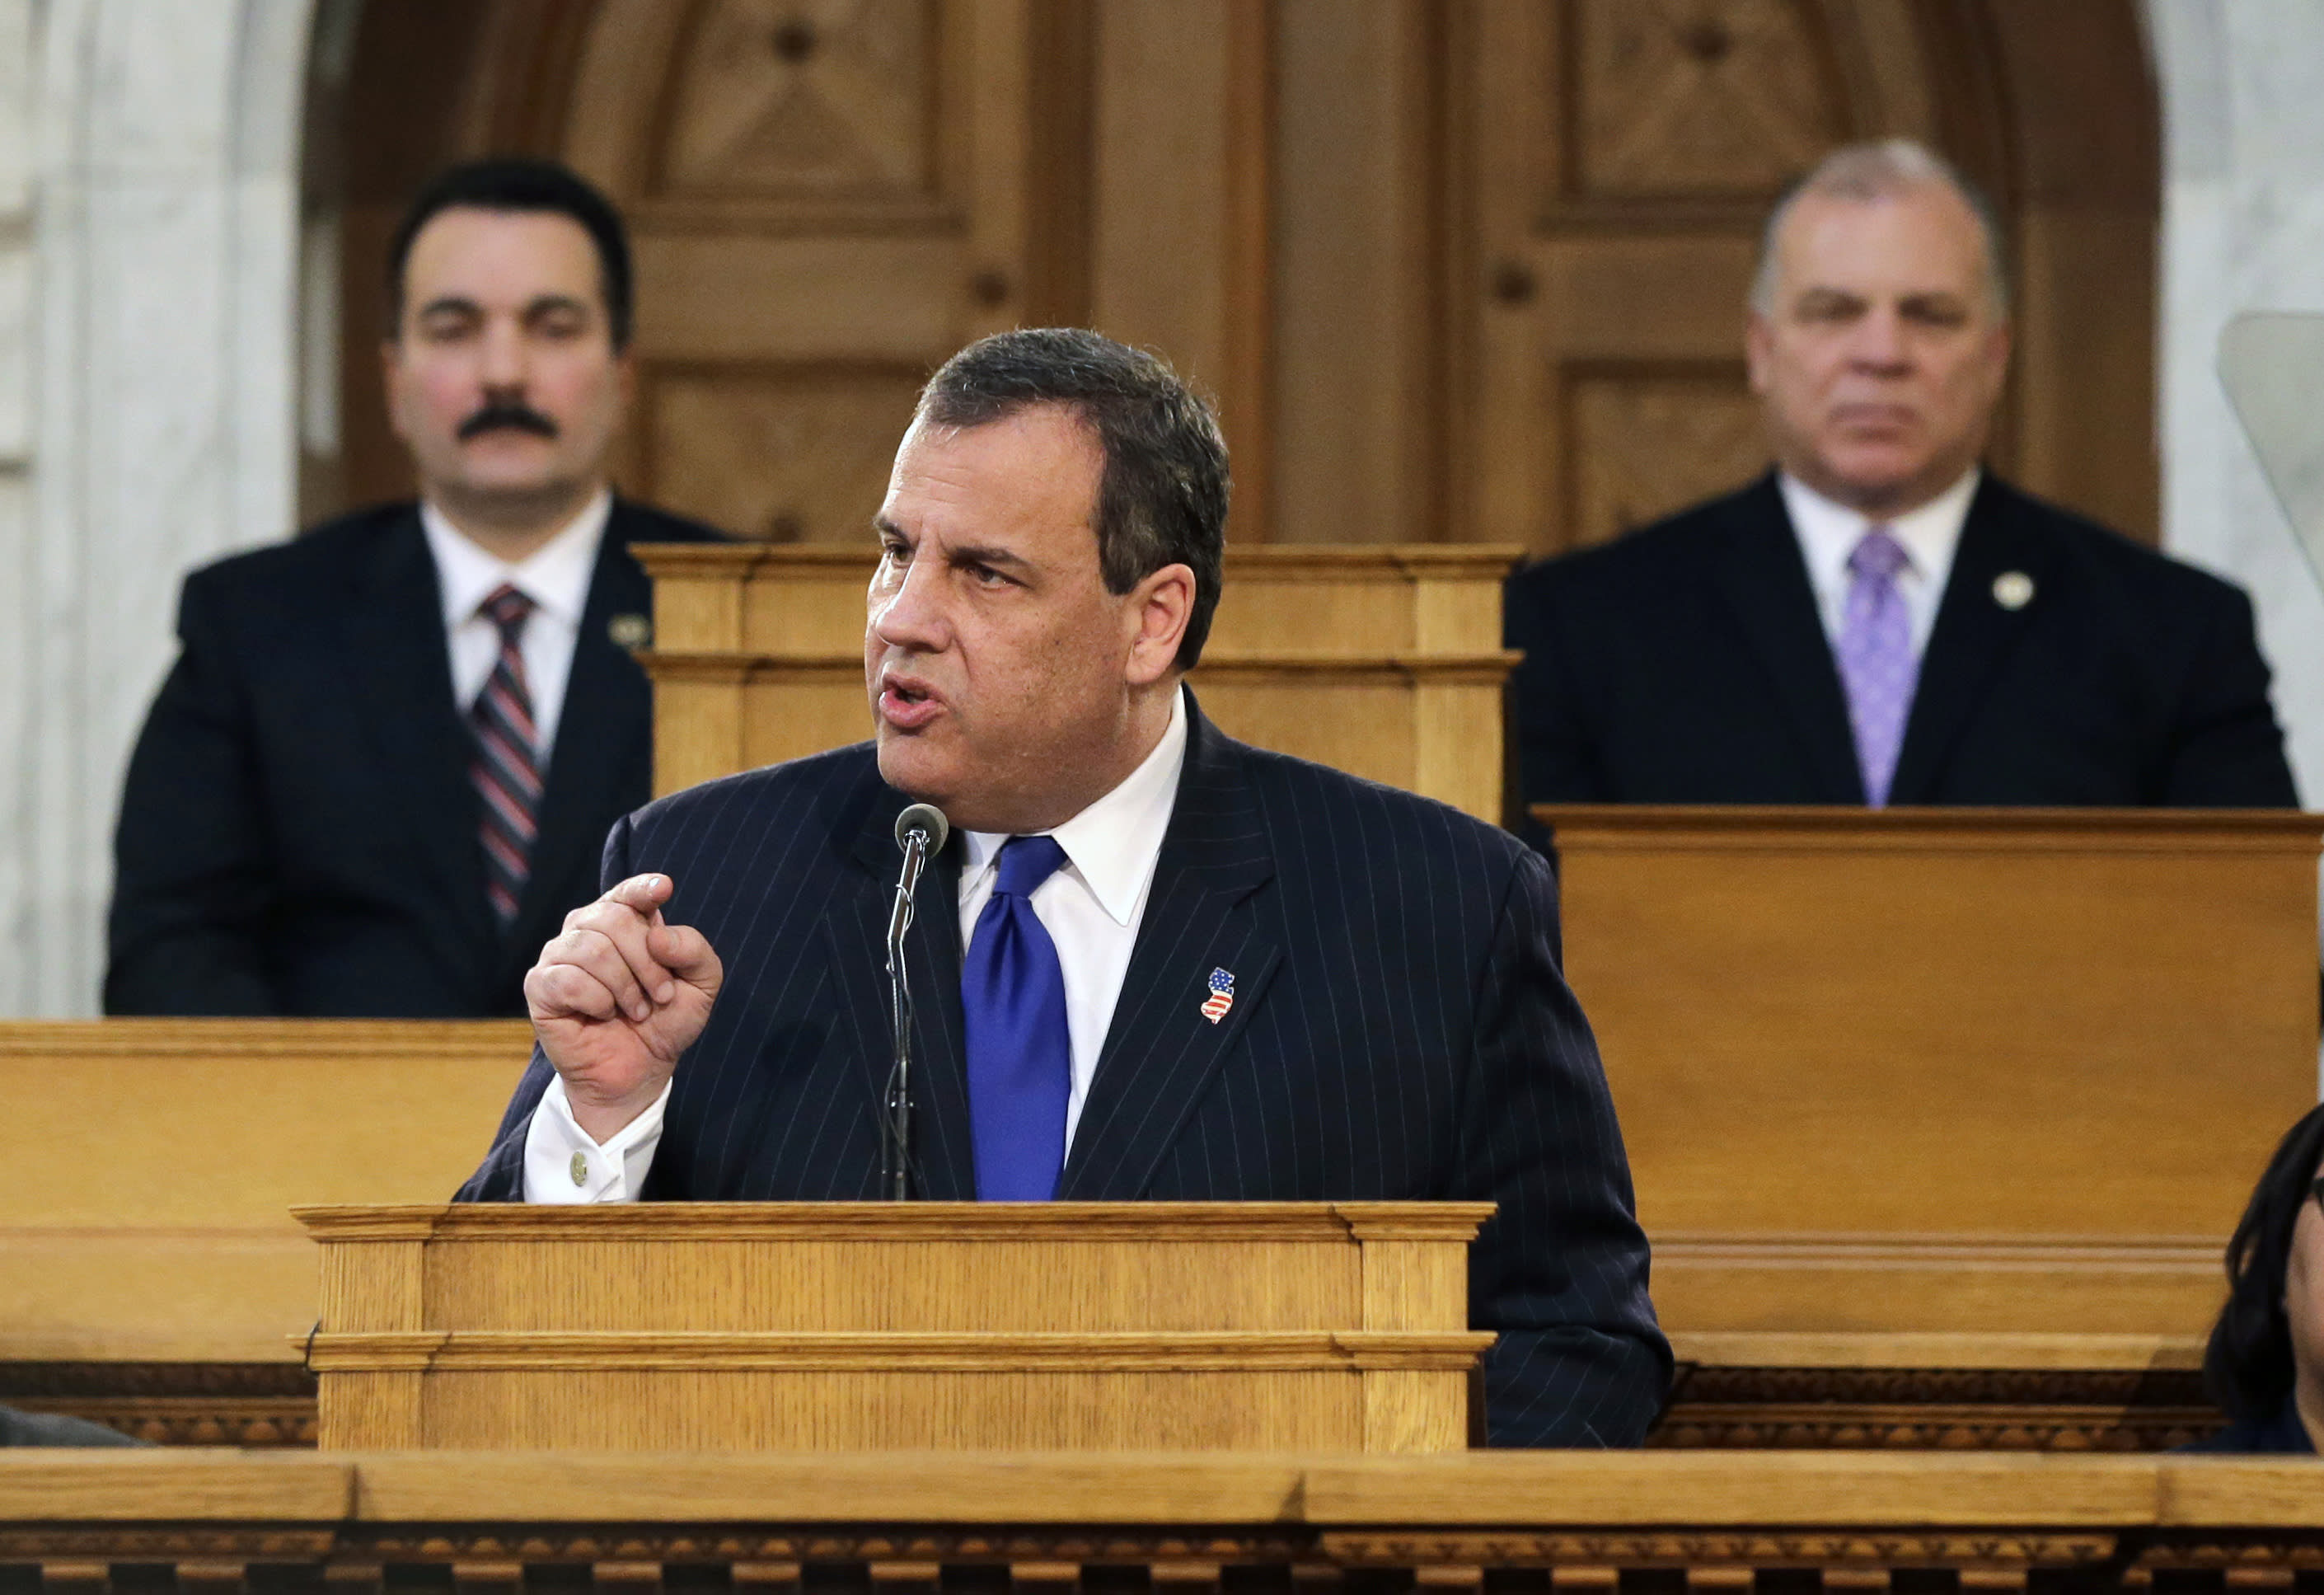 How Christie's budget changes transportation funding debate